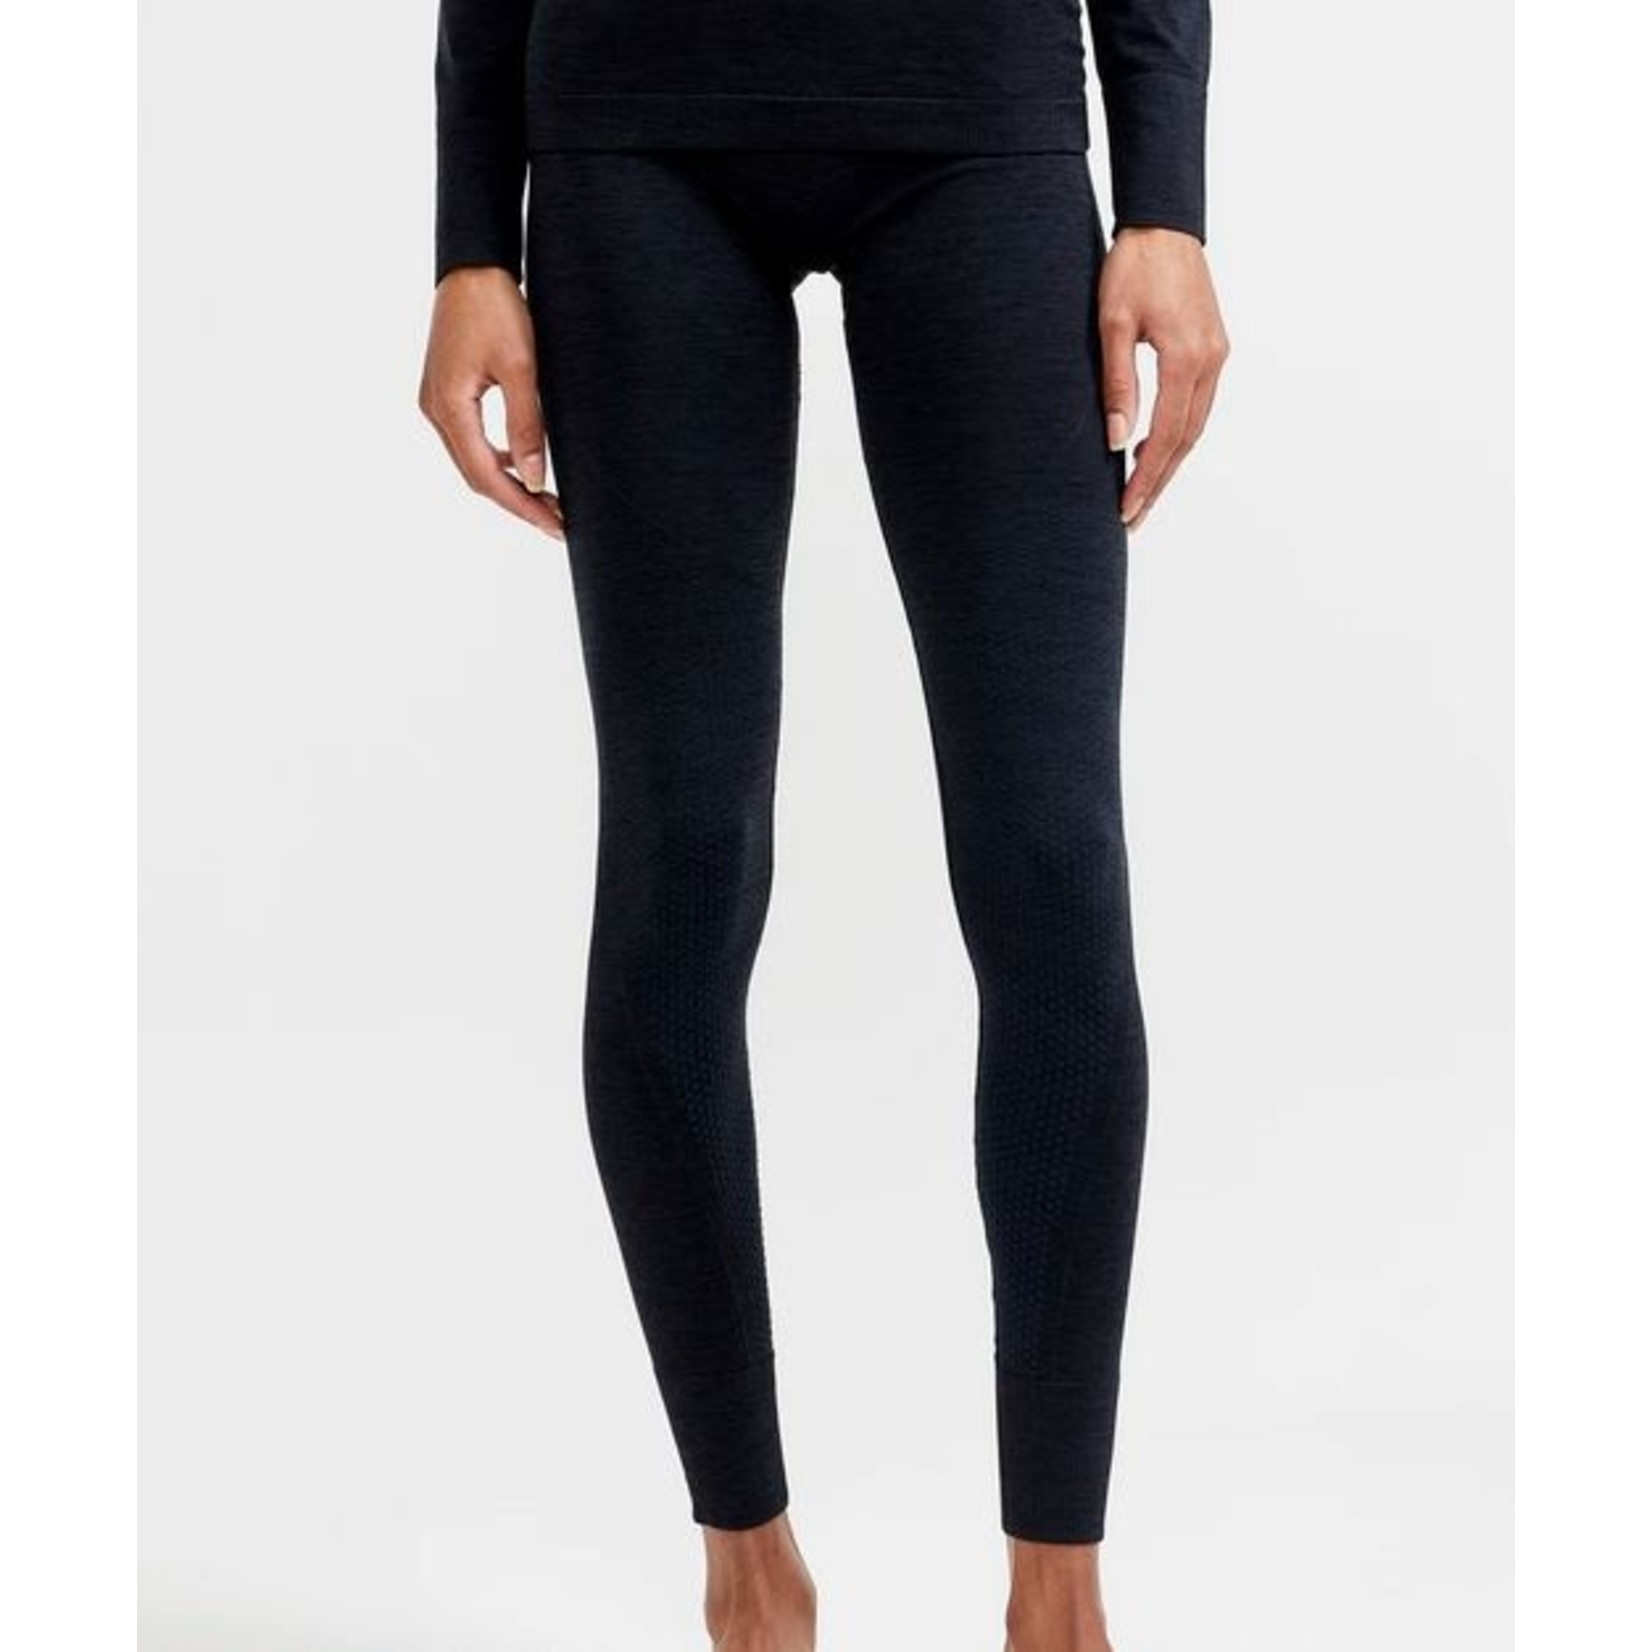 Craft Craft Core Dry Active Comfort Pant W